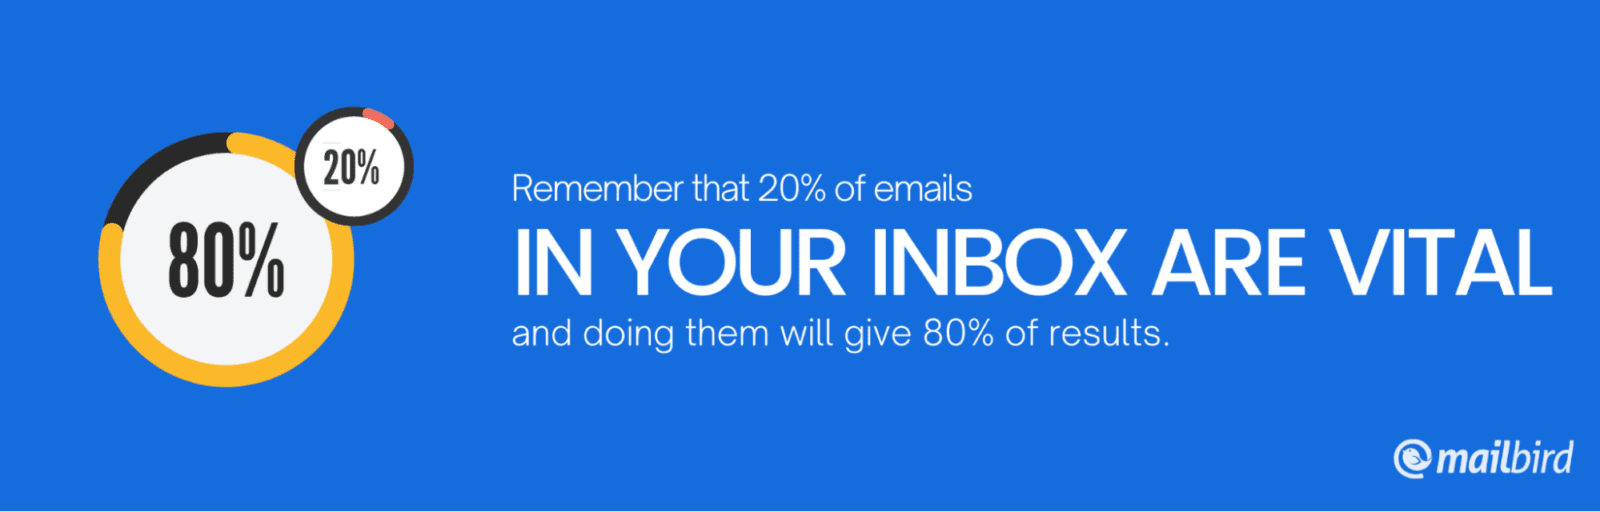 80 20 rule for email